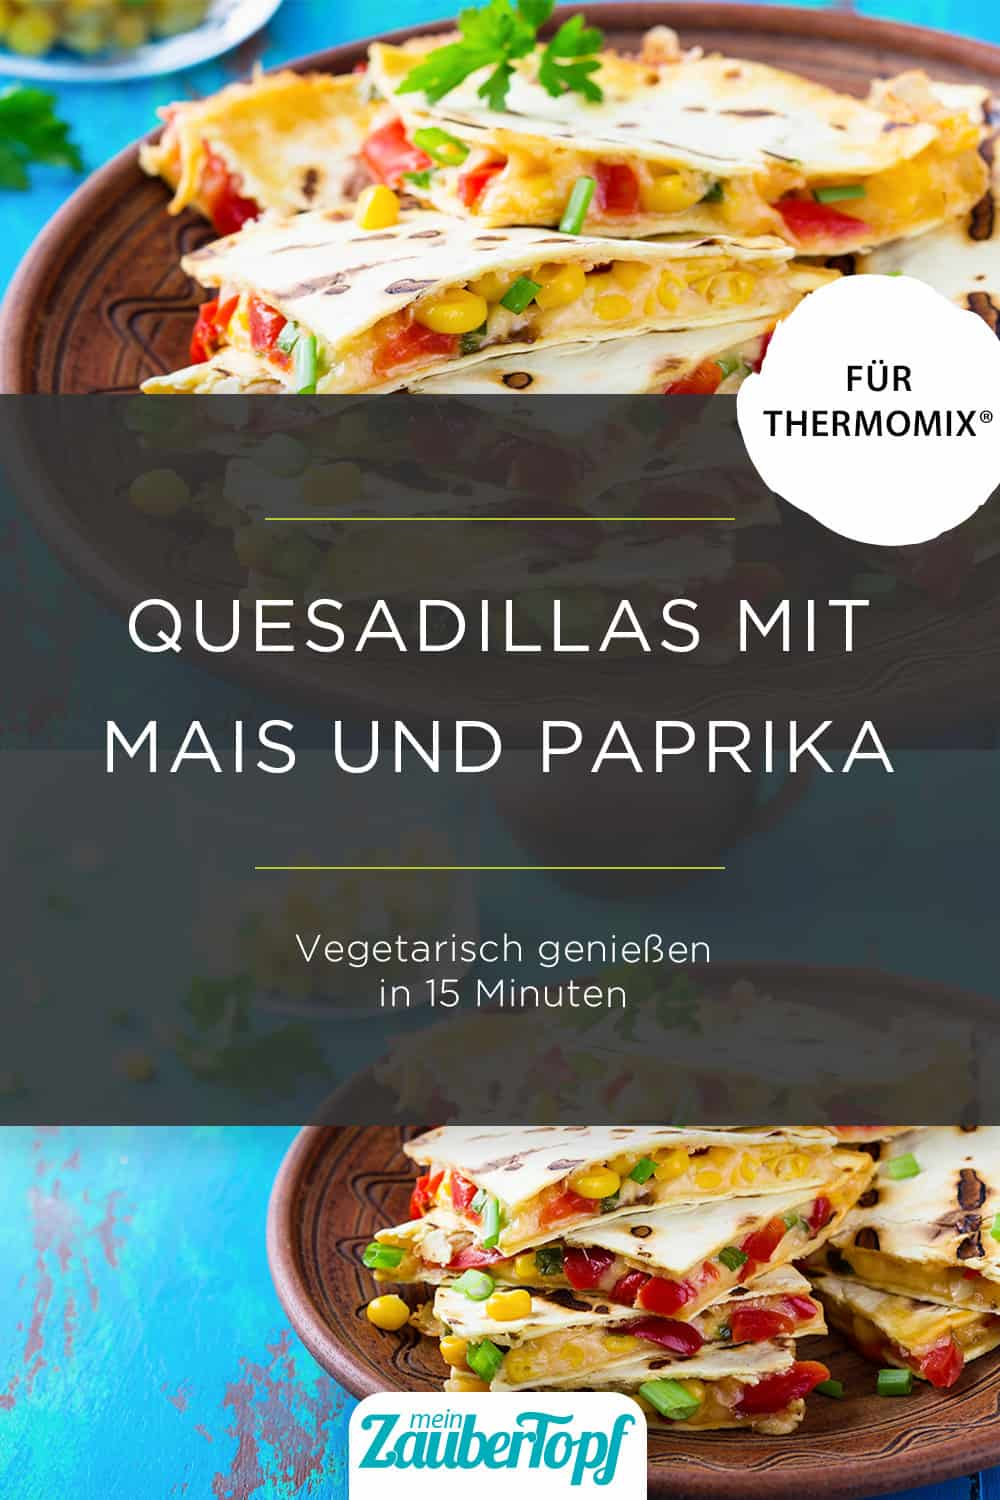 Quesadillas mit dem Thermomix® – Foto: gettyimages / istetiana